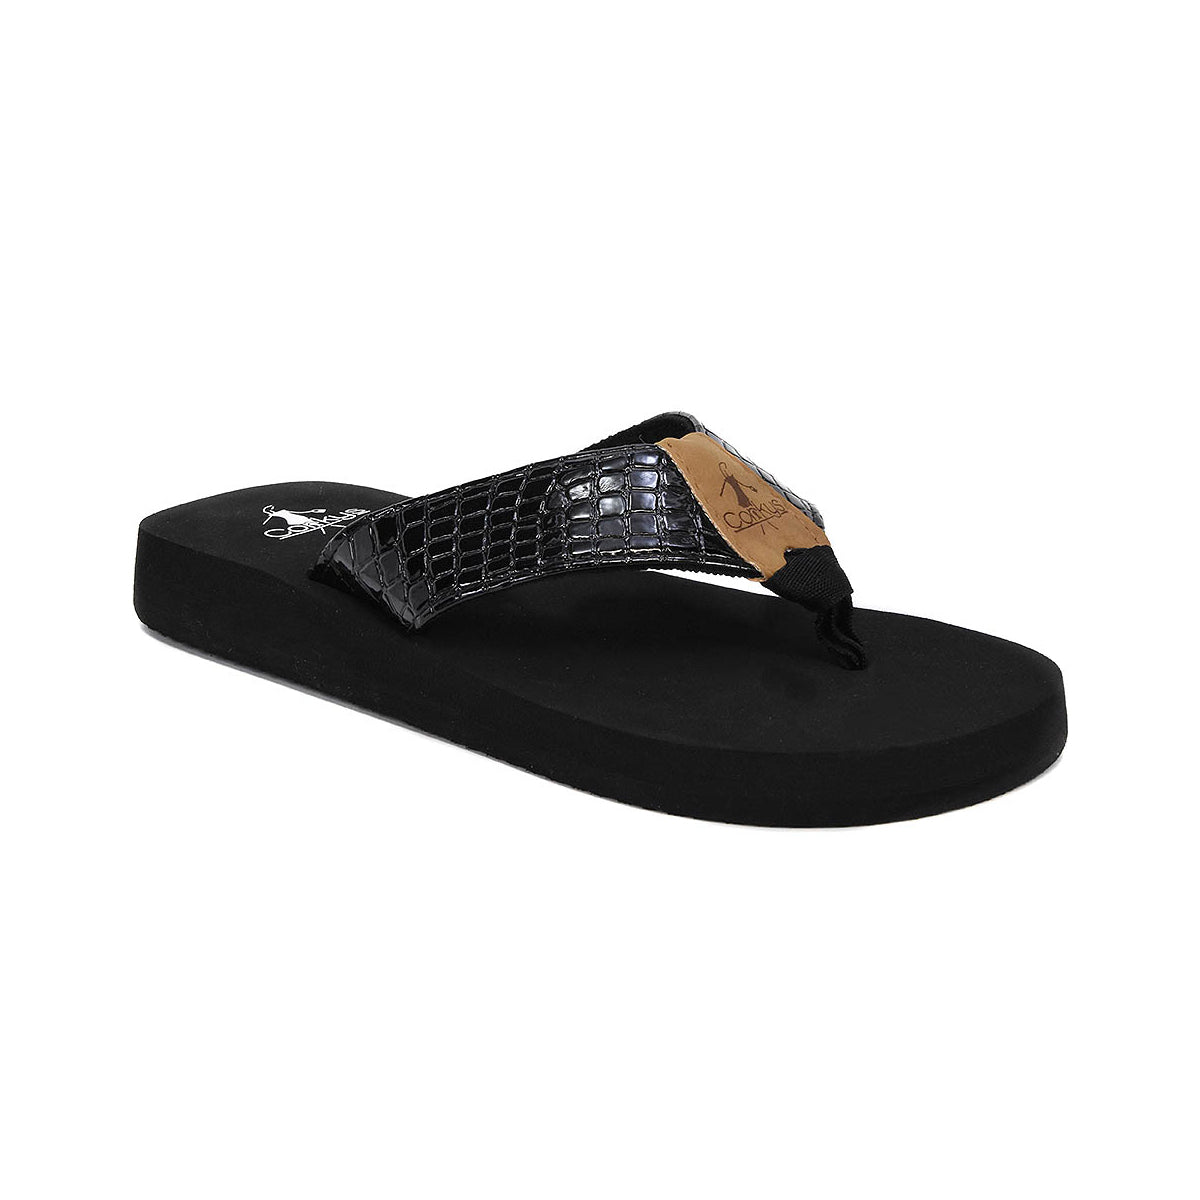 2d30bfffd18c44 Corkys Royal Black Faux Snake Skin Flip Flops - Fashion Freak LLC